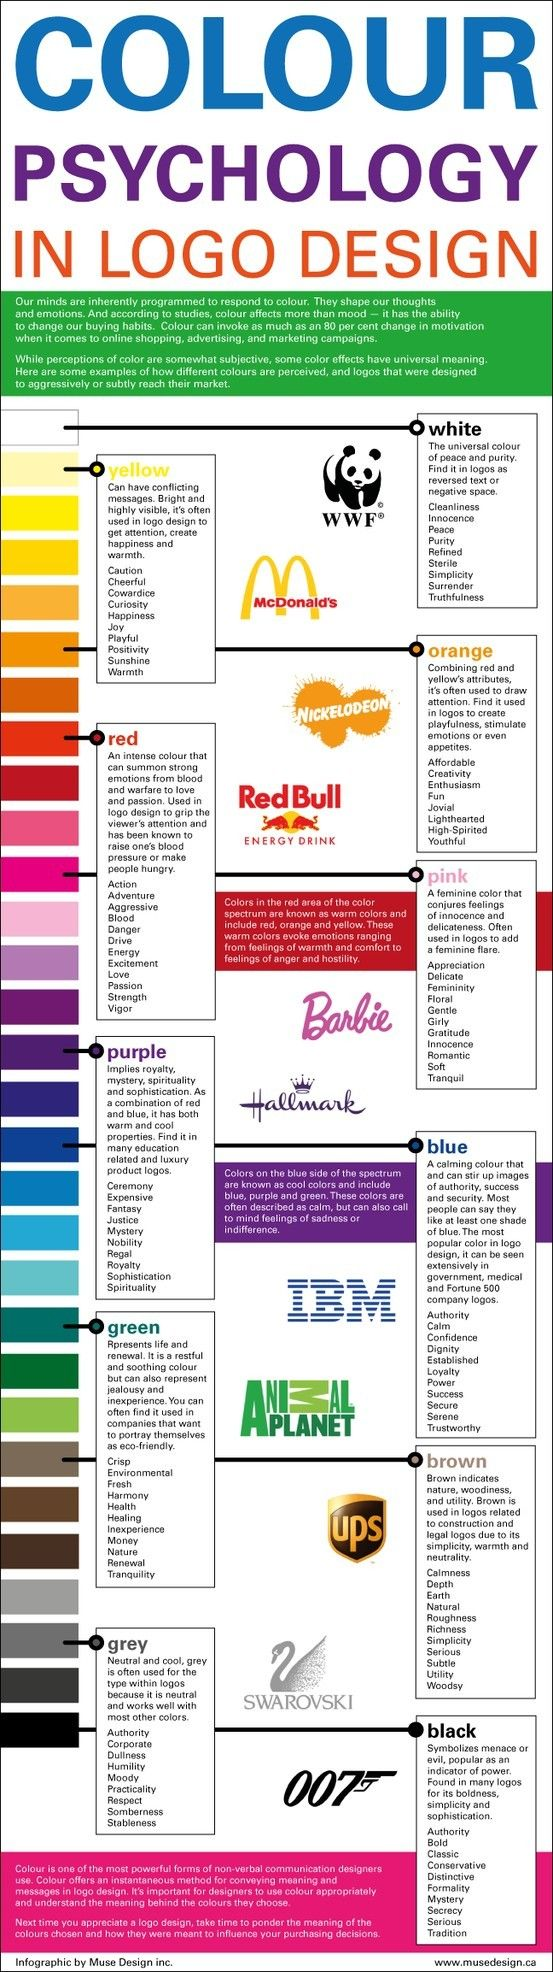 Colour Psychology In Logo Design Logo Design Facebook And Graphics